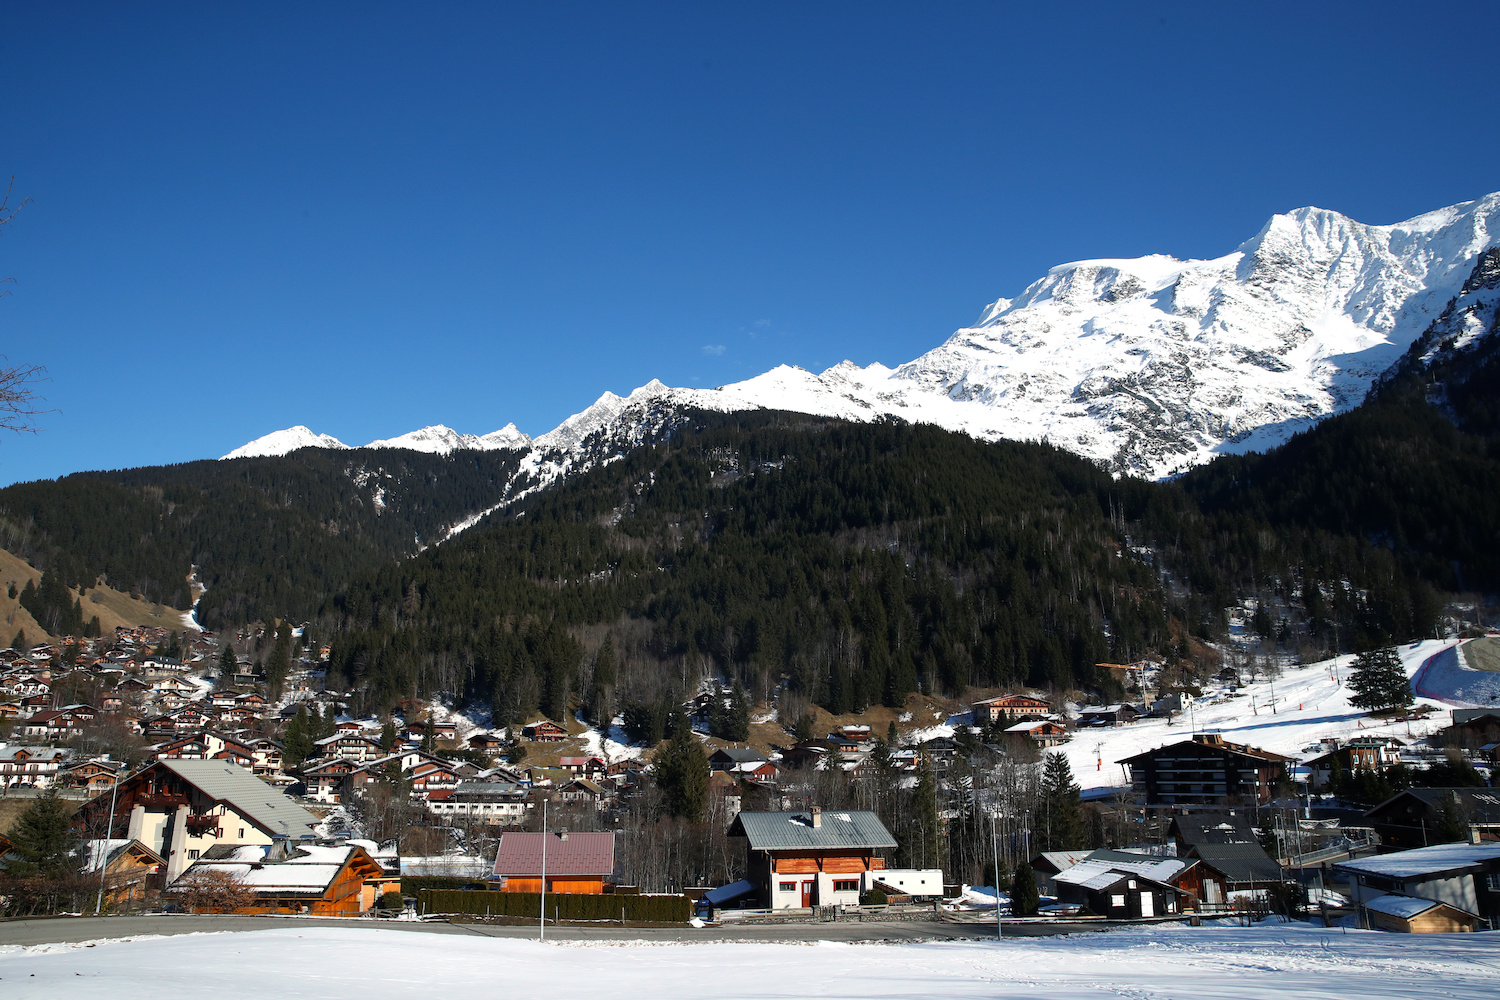 The French Alpine resort of Les Contamines-Montjoie is where five British nationals including a child contracted the coronavirus. They were staying in the same chalet as a Briton who had become infected while attending a corporate function at a hotel in Singapore. (Reuters Photo)